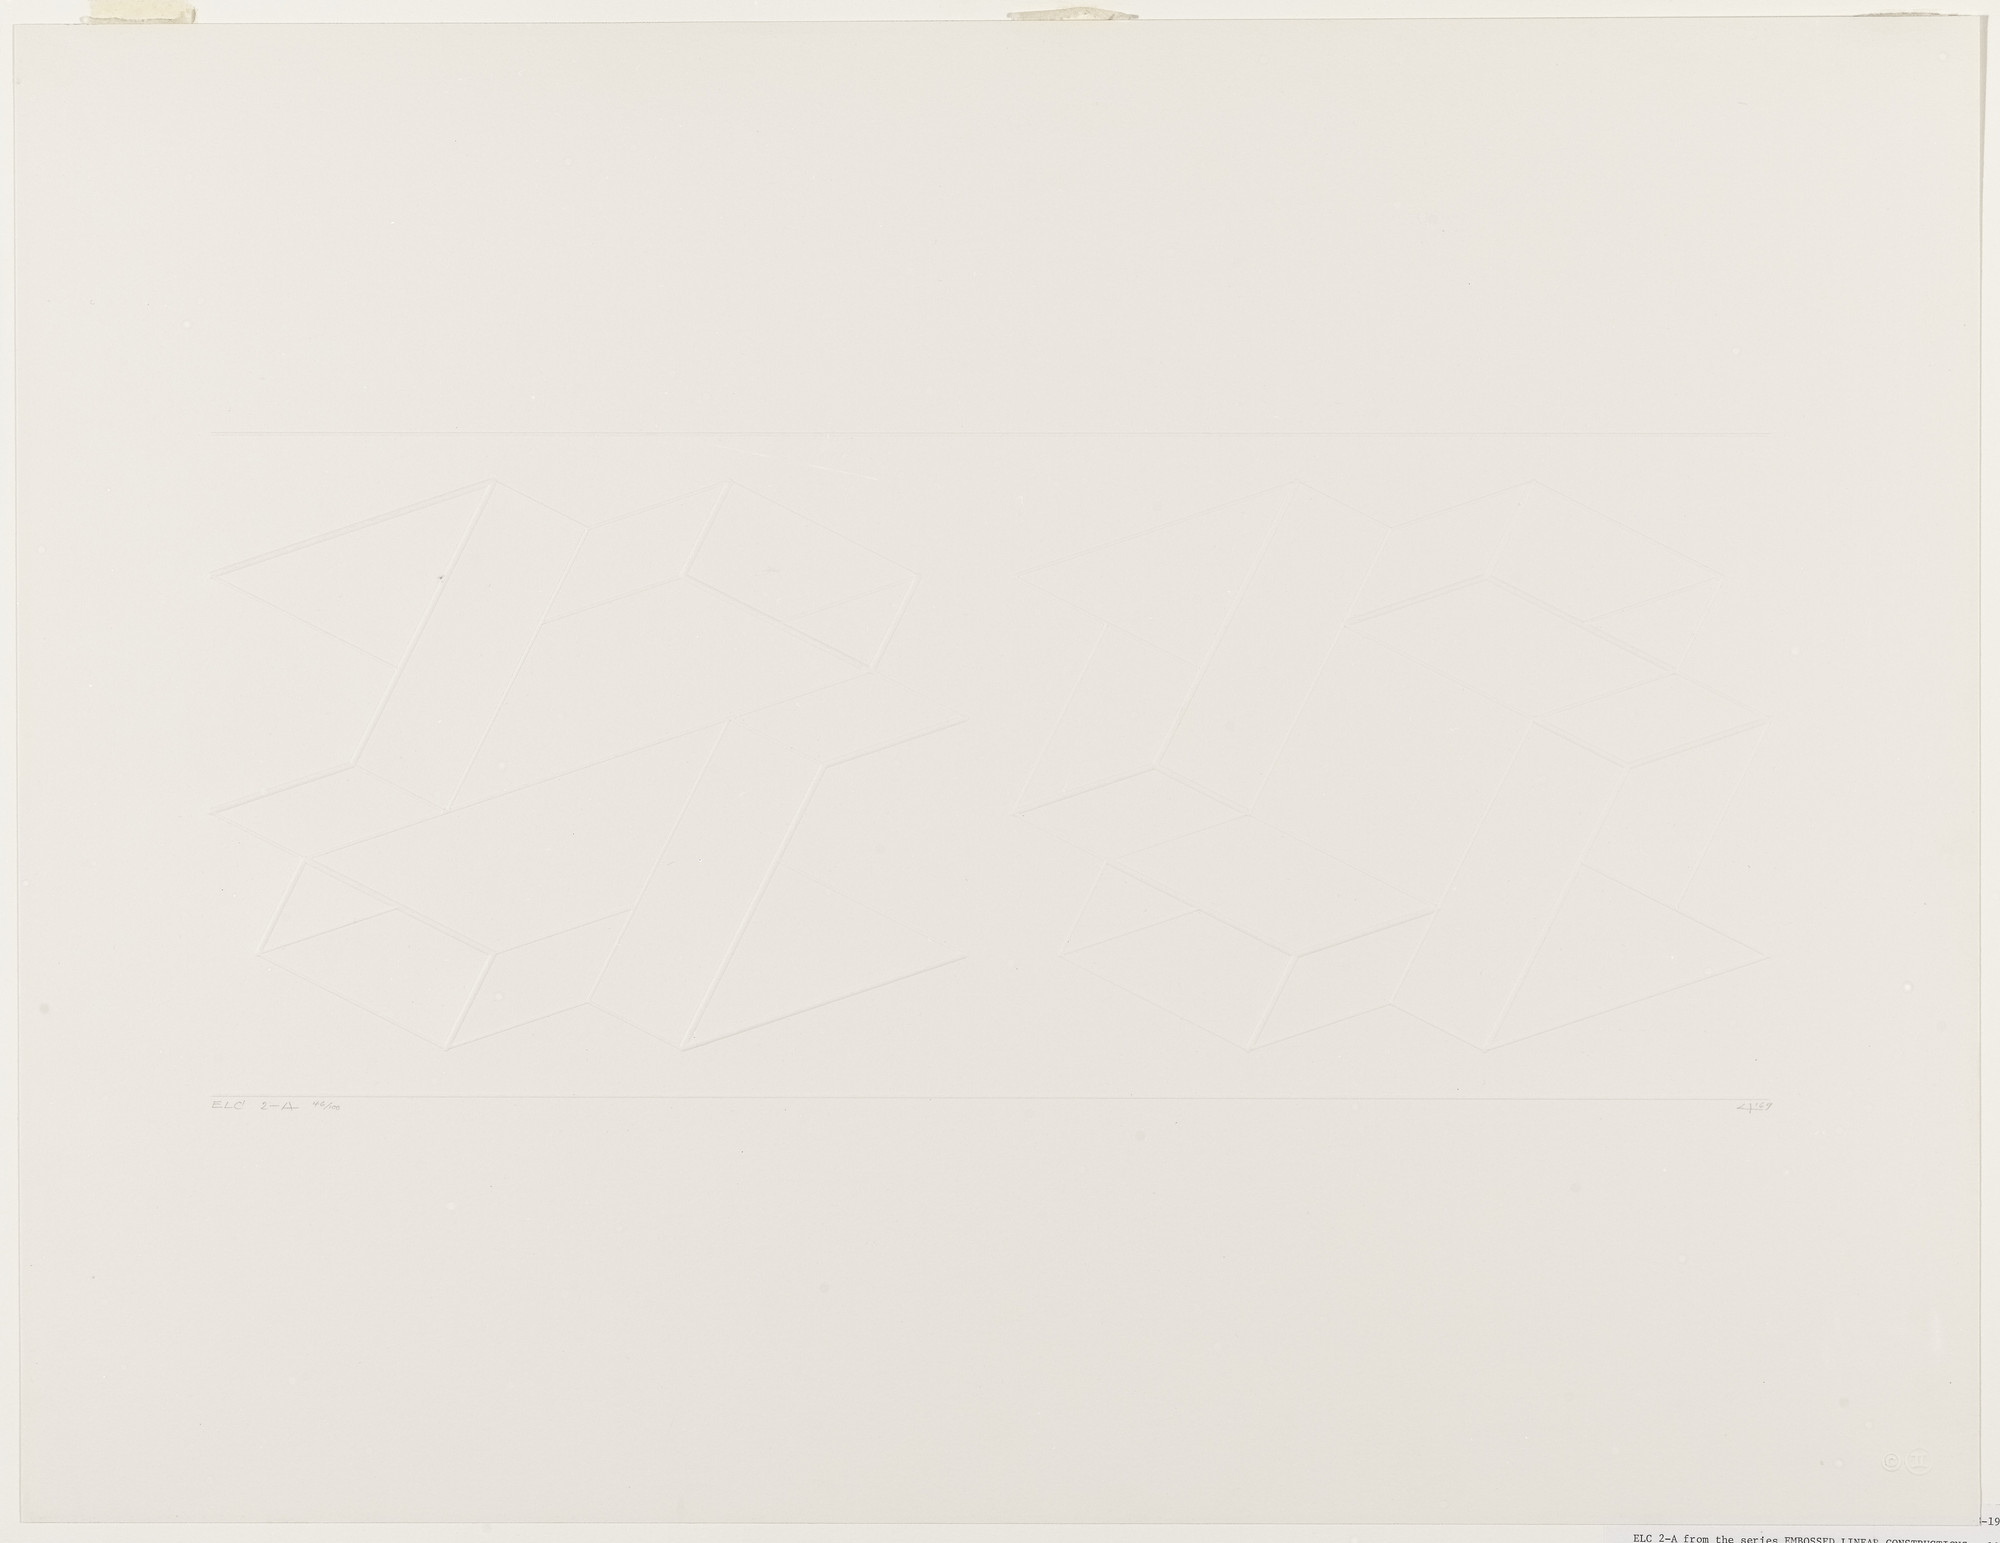 Josef Albers. ELC 2-A from Embossed Linear Constructions (ELC). 1969